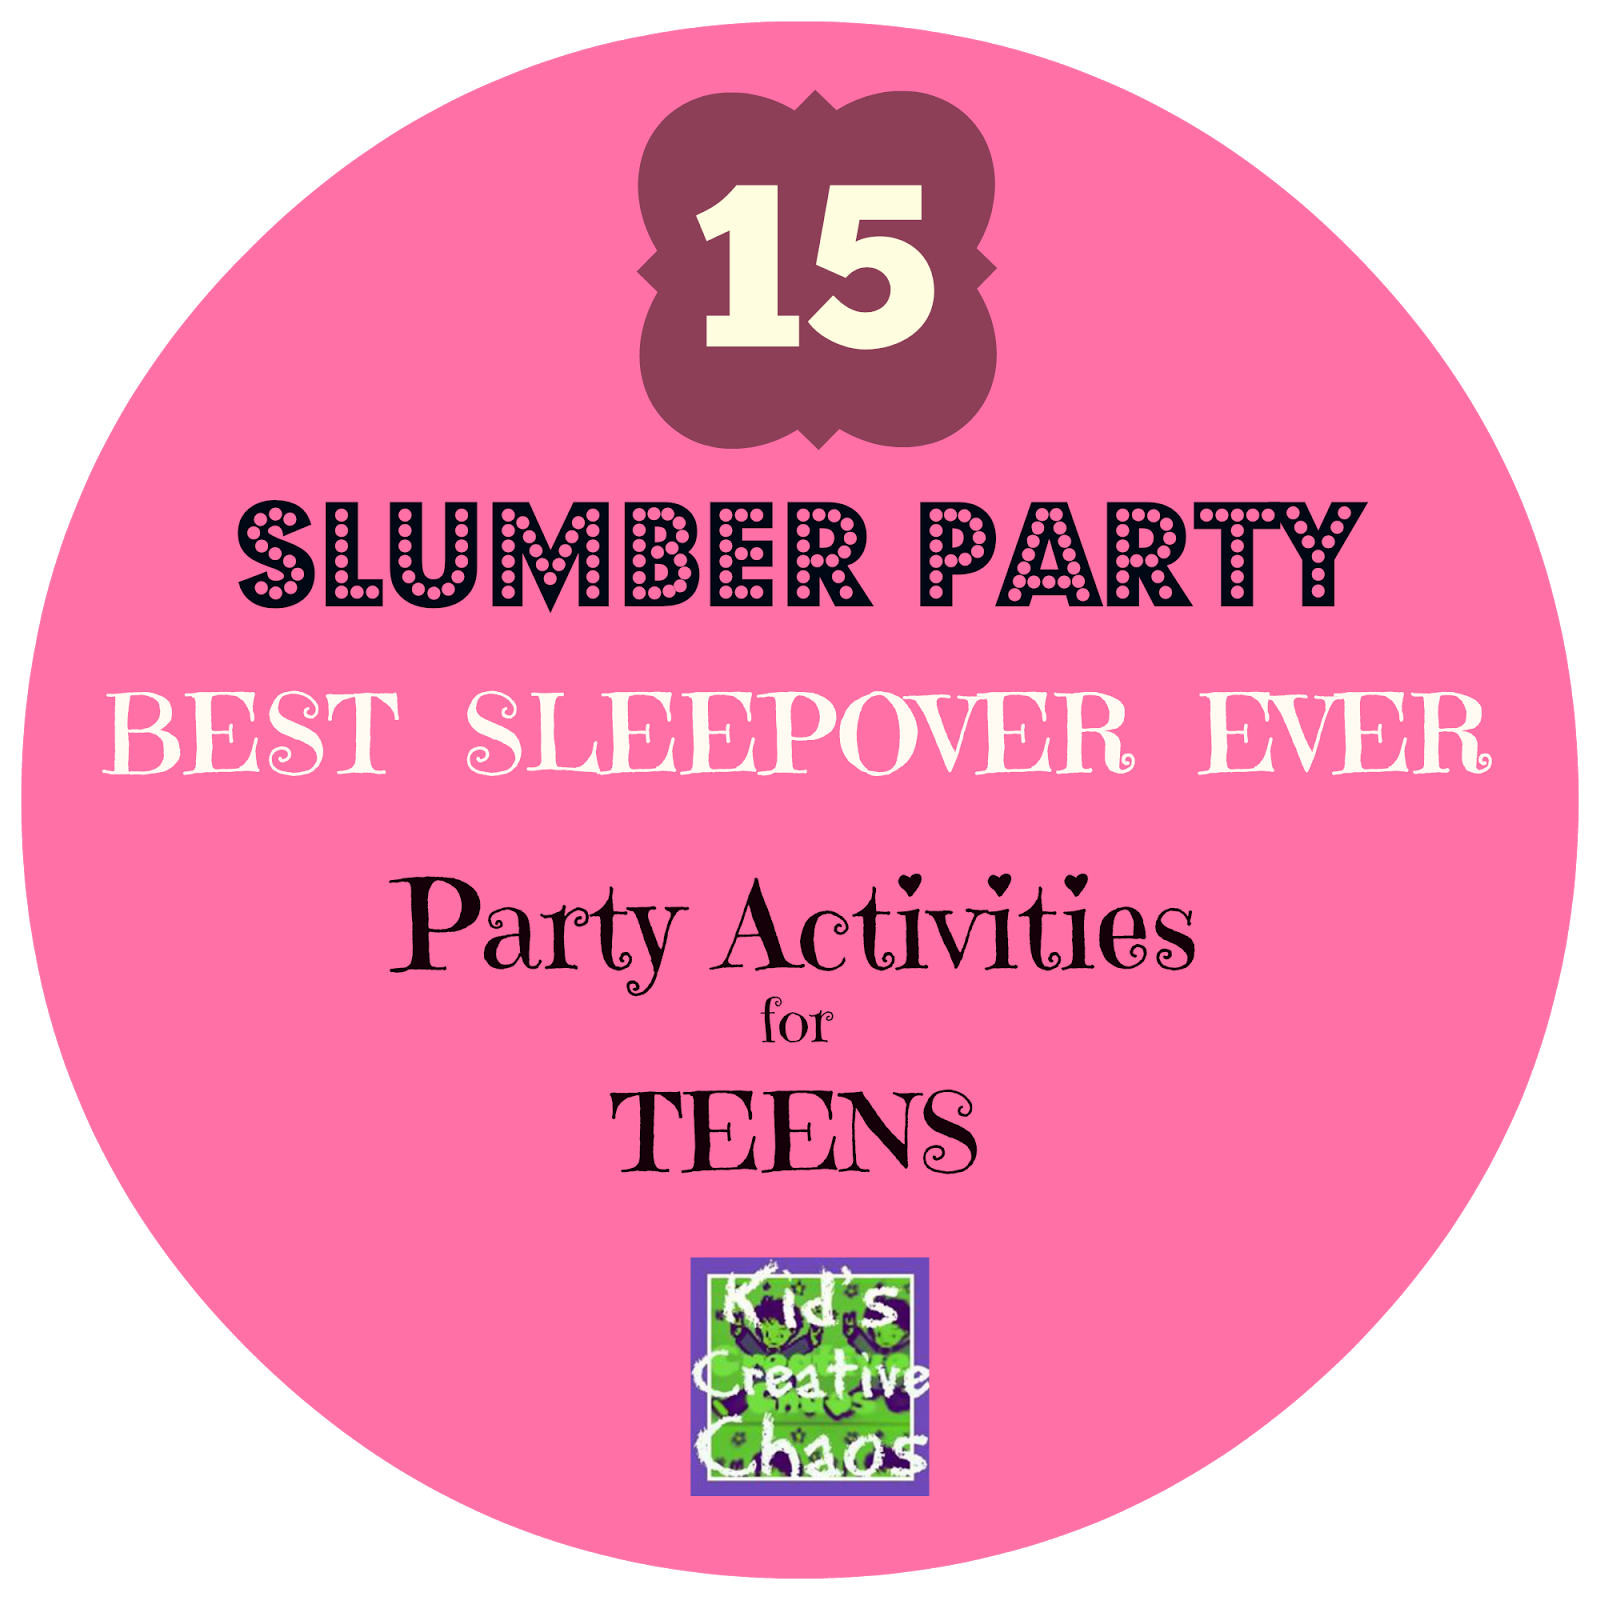 Kids Creative Chaos: 15 Slumber Party Games and Activities for ...